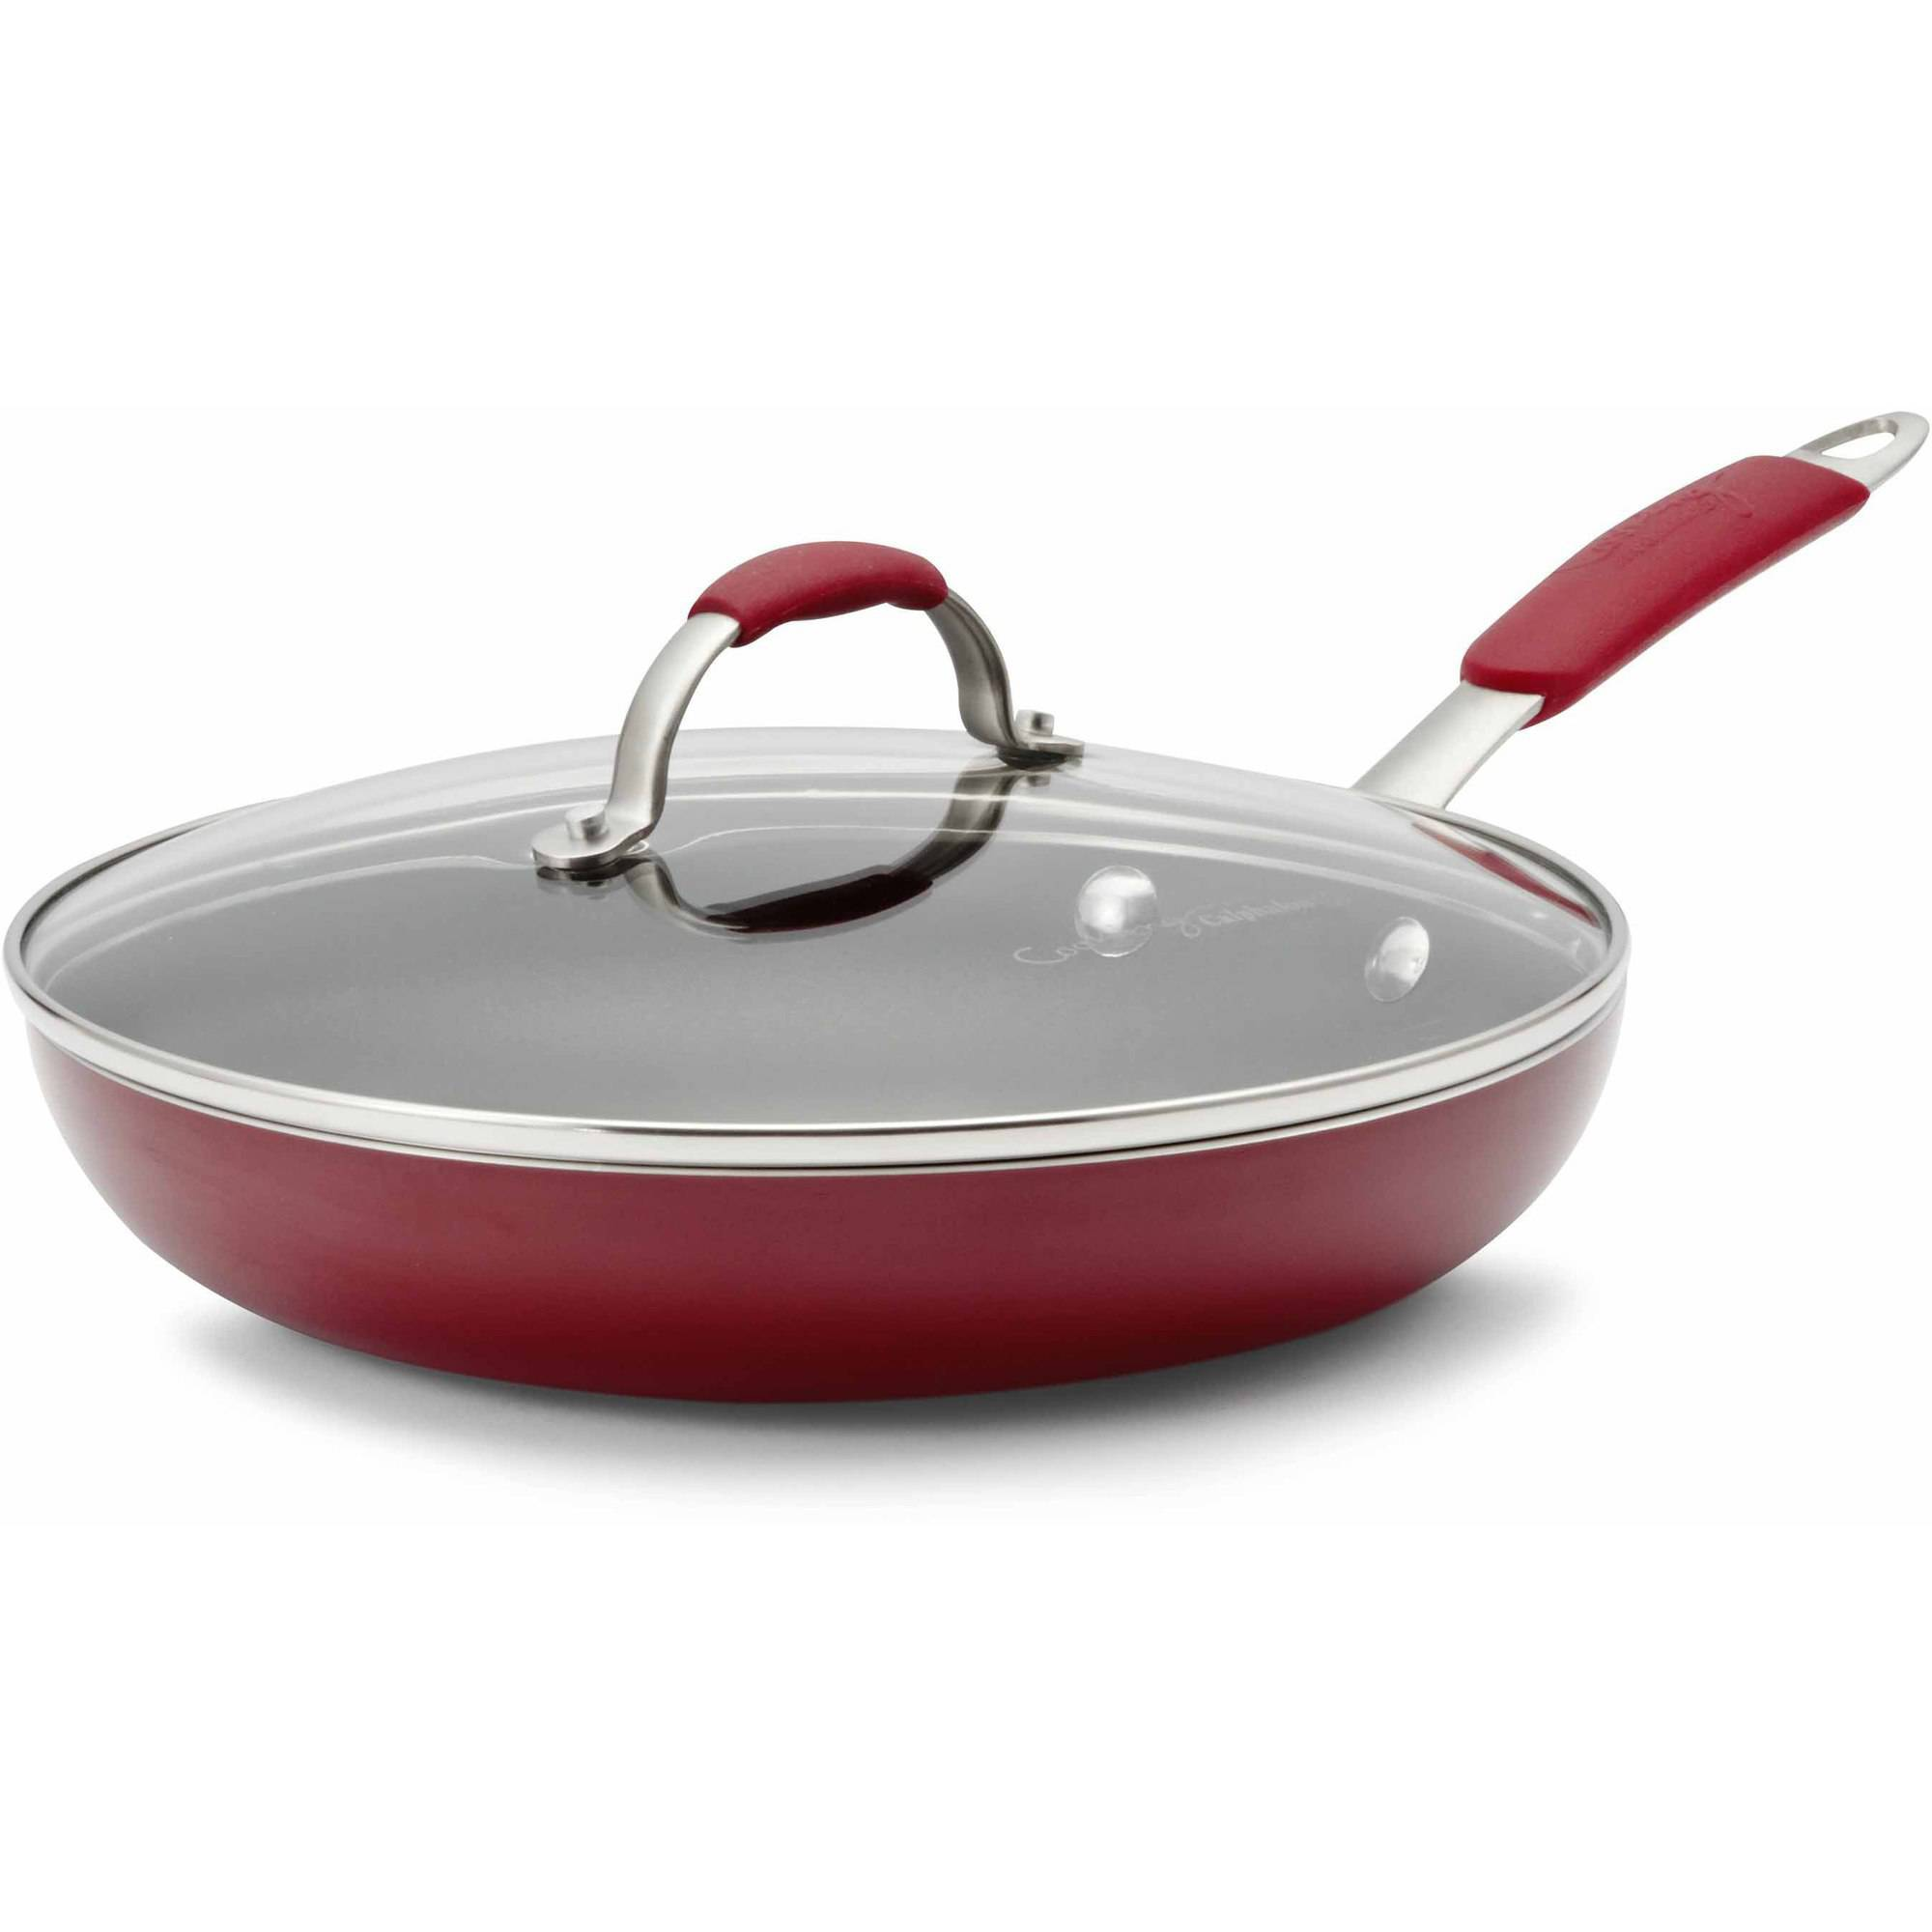 """Cooking with Calphalon Enamel Nonstick 10"""" Omelette Pan & Cover, Red"""